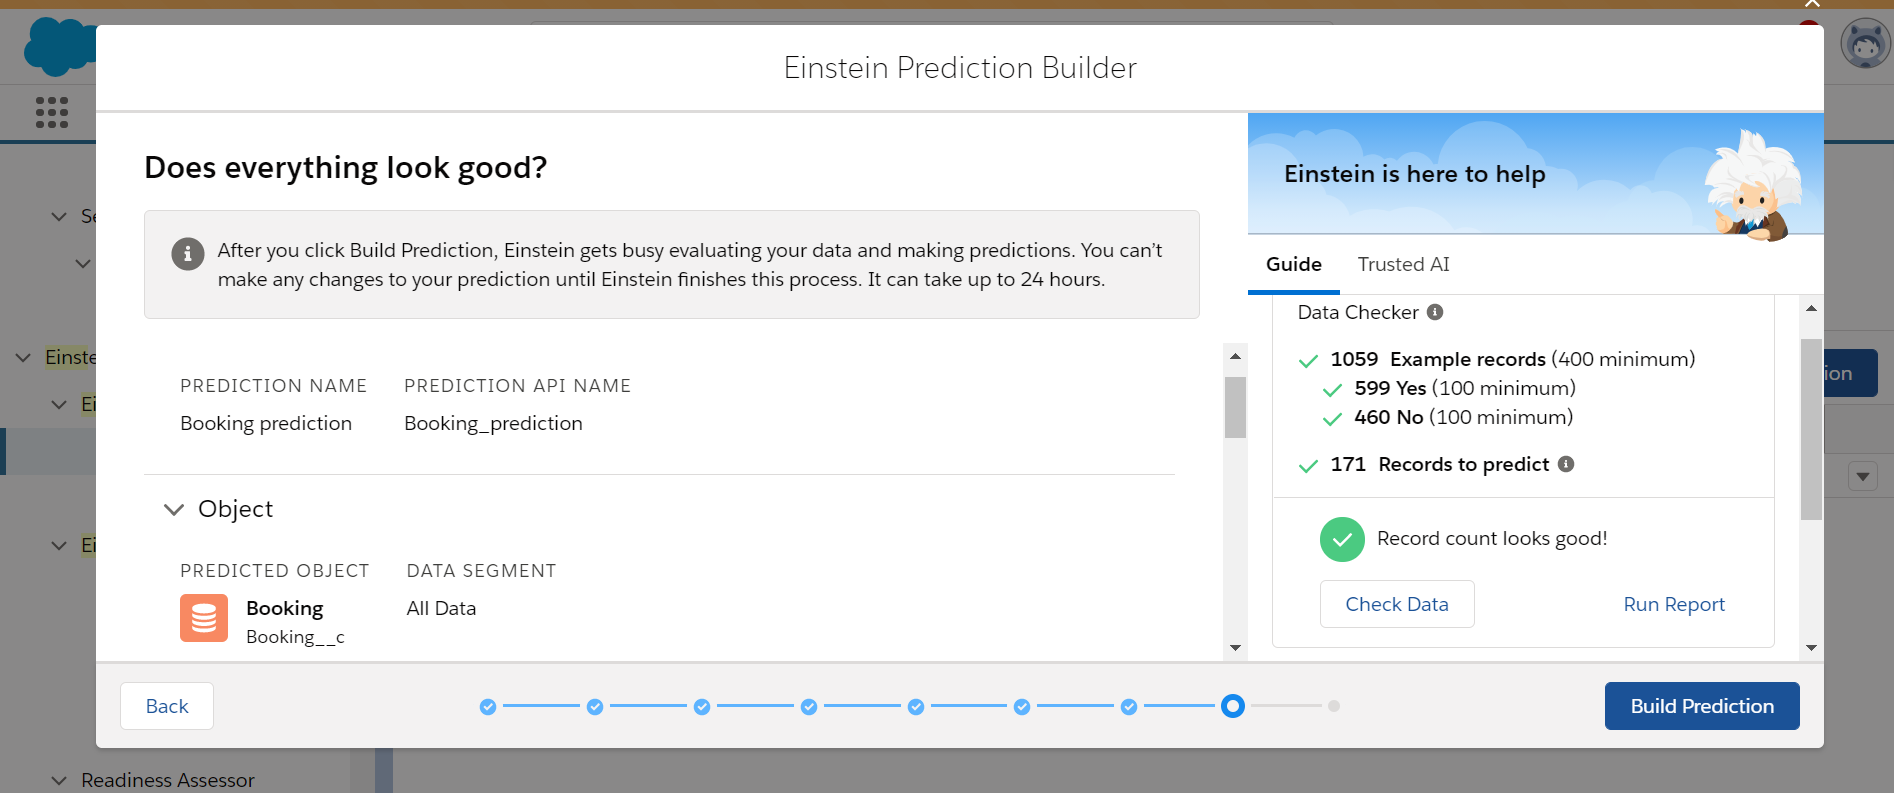 Einstein Prediction Builder